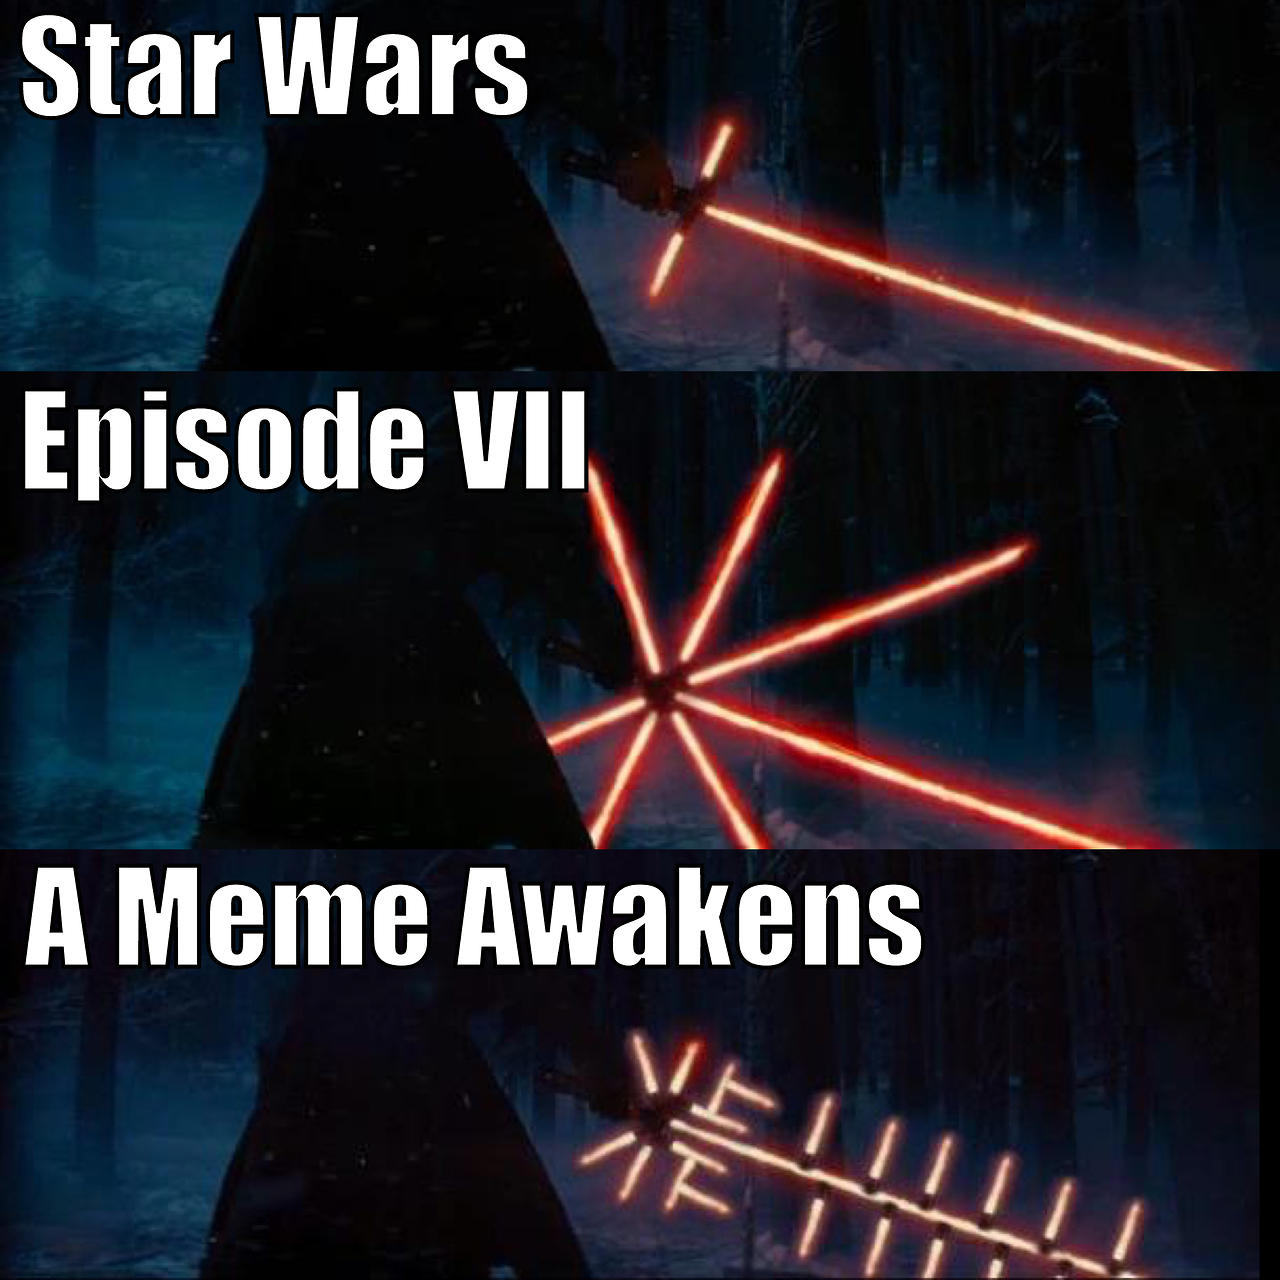 Star Wars Episode Iiv A Meme Awakens Crossguard